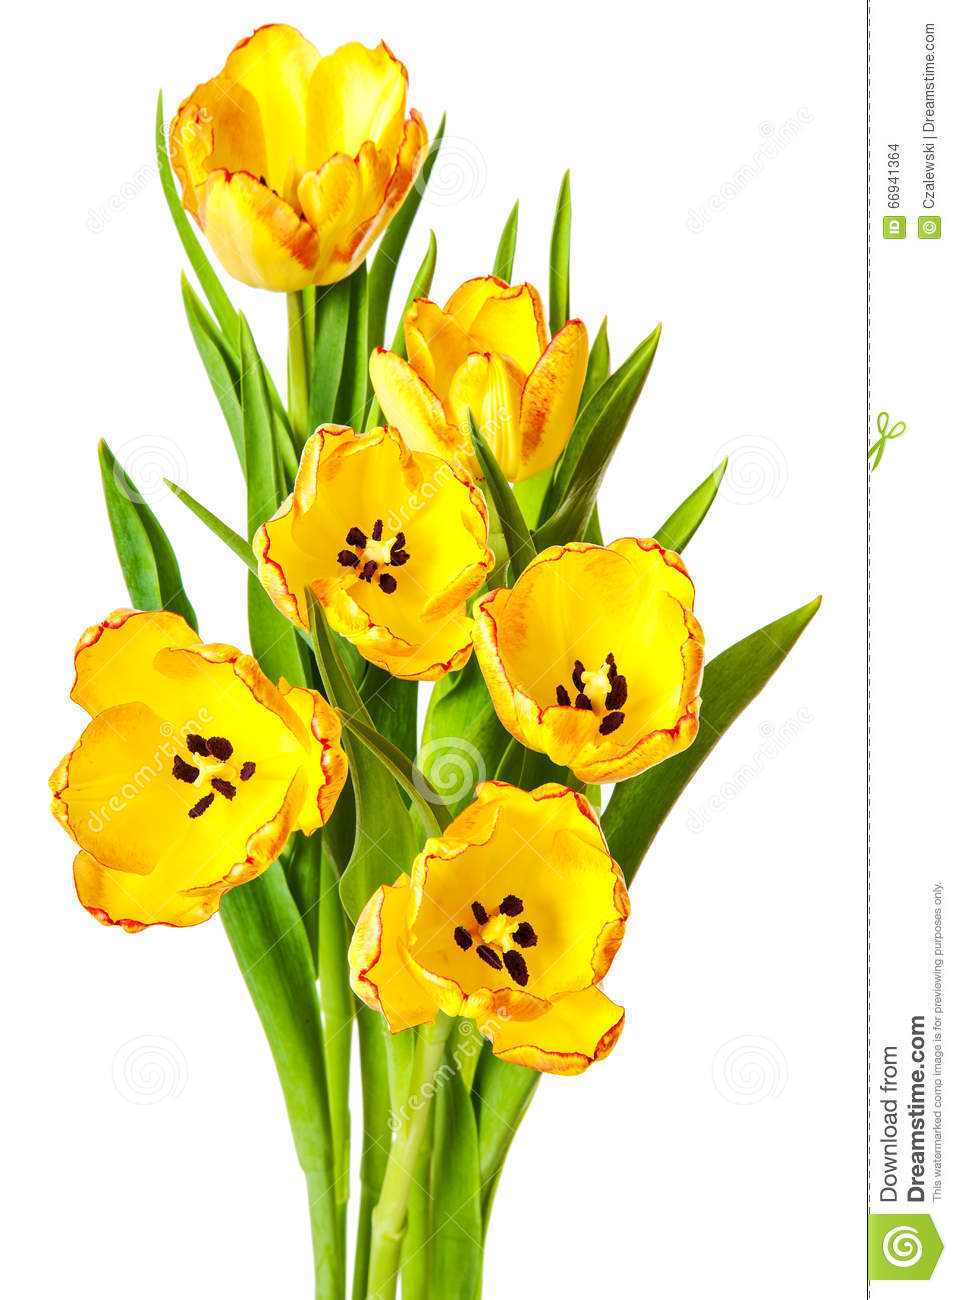 Yellow tulips bouquet tulip flowers isolated stock photo image of yellow tulips bouquet tulip flowers isolated mightylinksfo